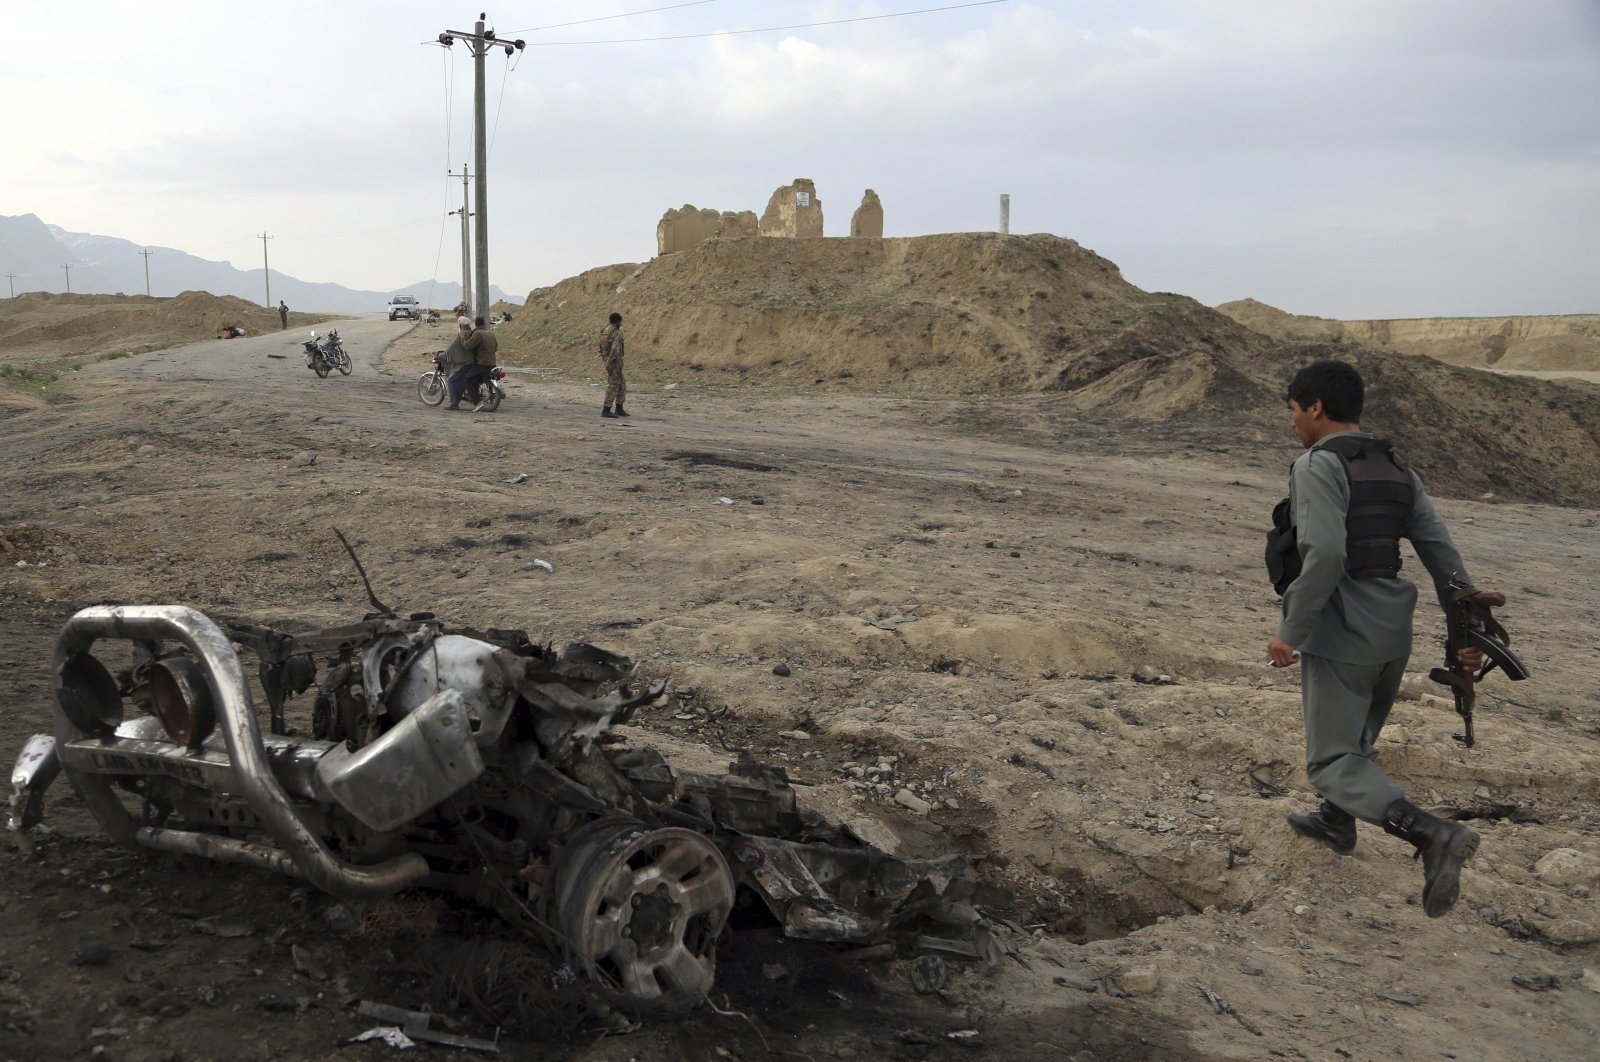 Afghan security forces at the site of an attack near the Bagram air base, Kabul, Apr. 9, 2019. (AP Photo)